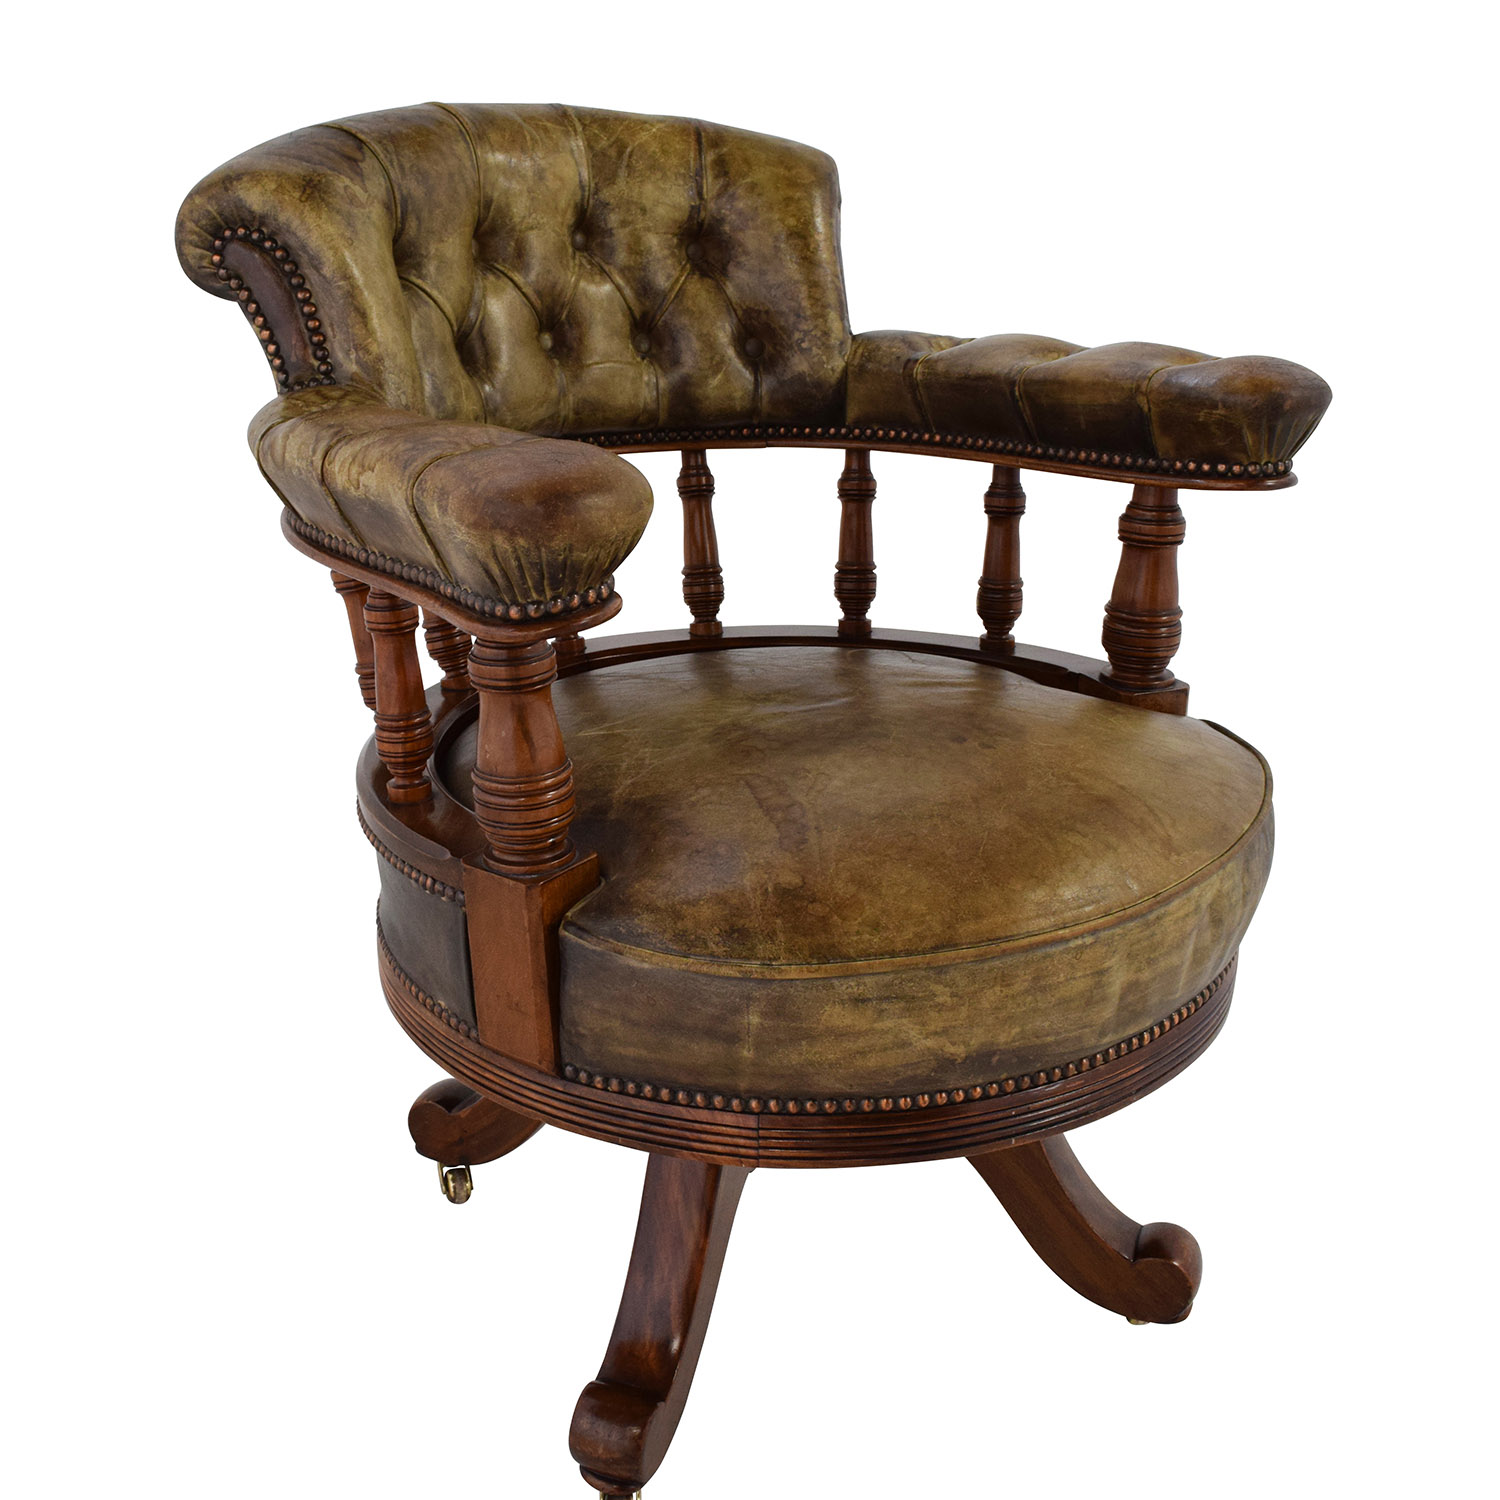 ... shop Antique Antique Leather Captains Chair online - 86% OFF - Antique Antique Leather Captain's Chair / Chairs